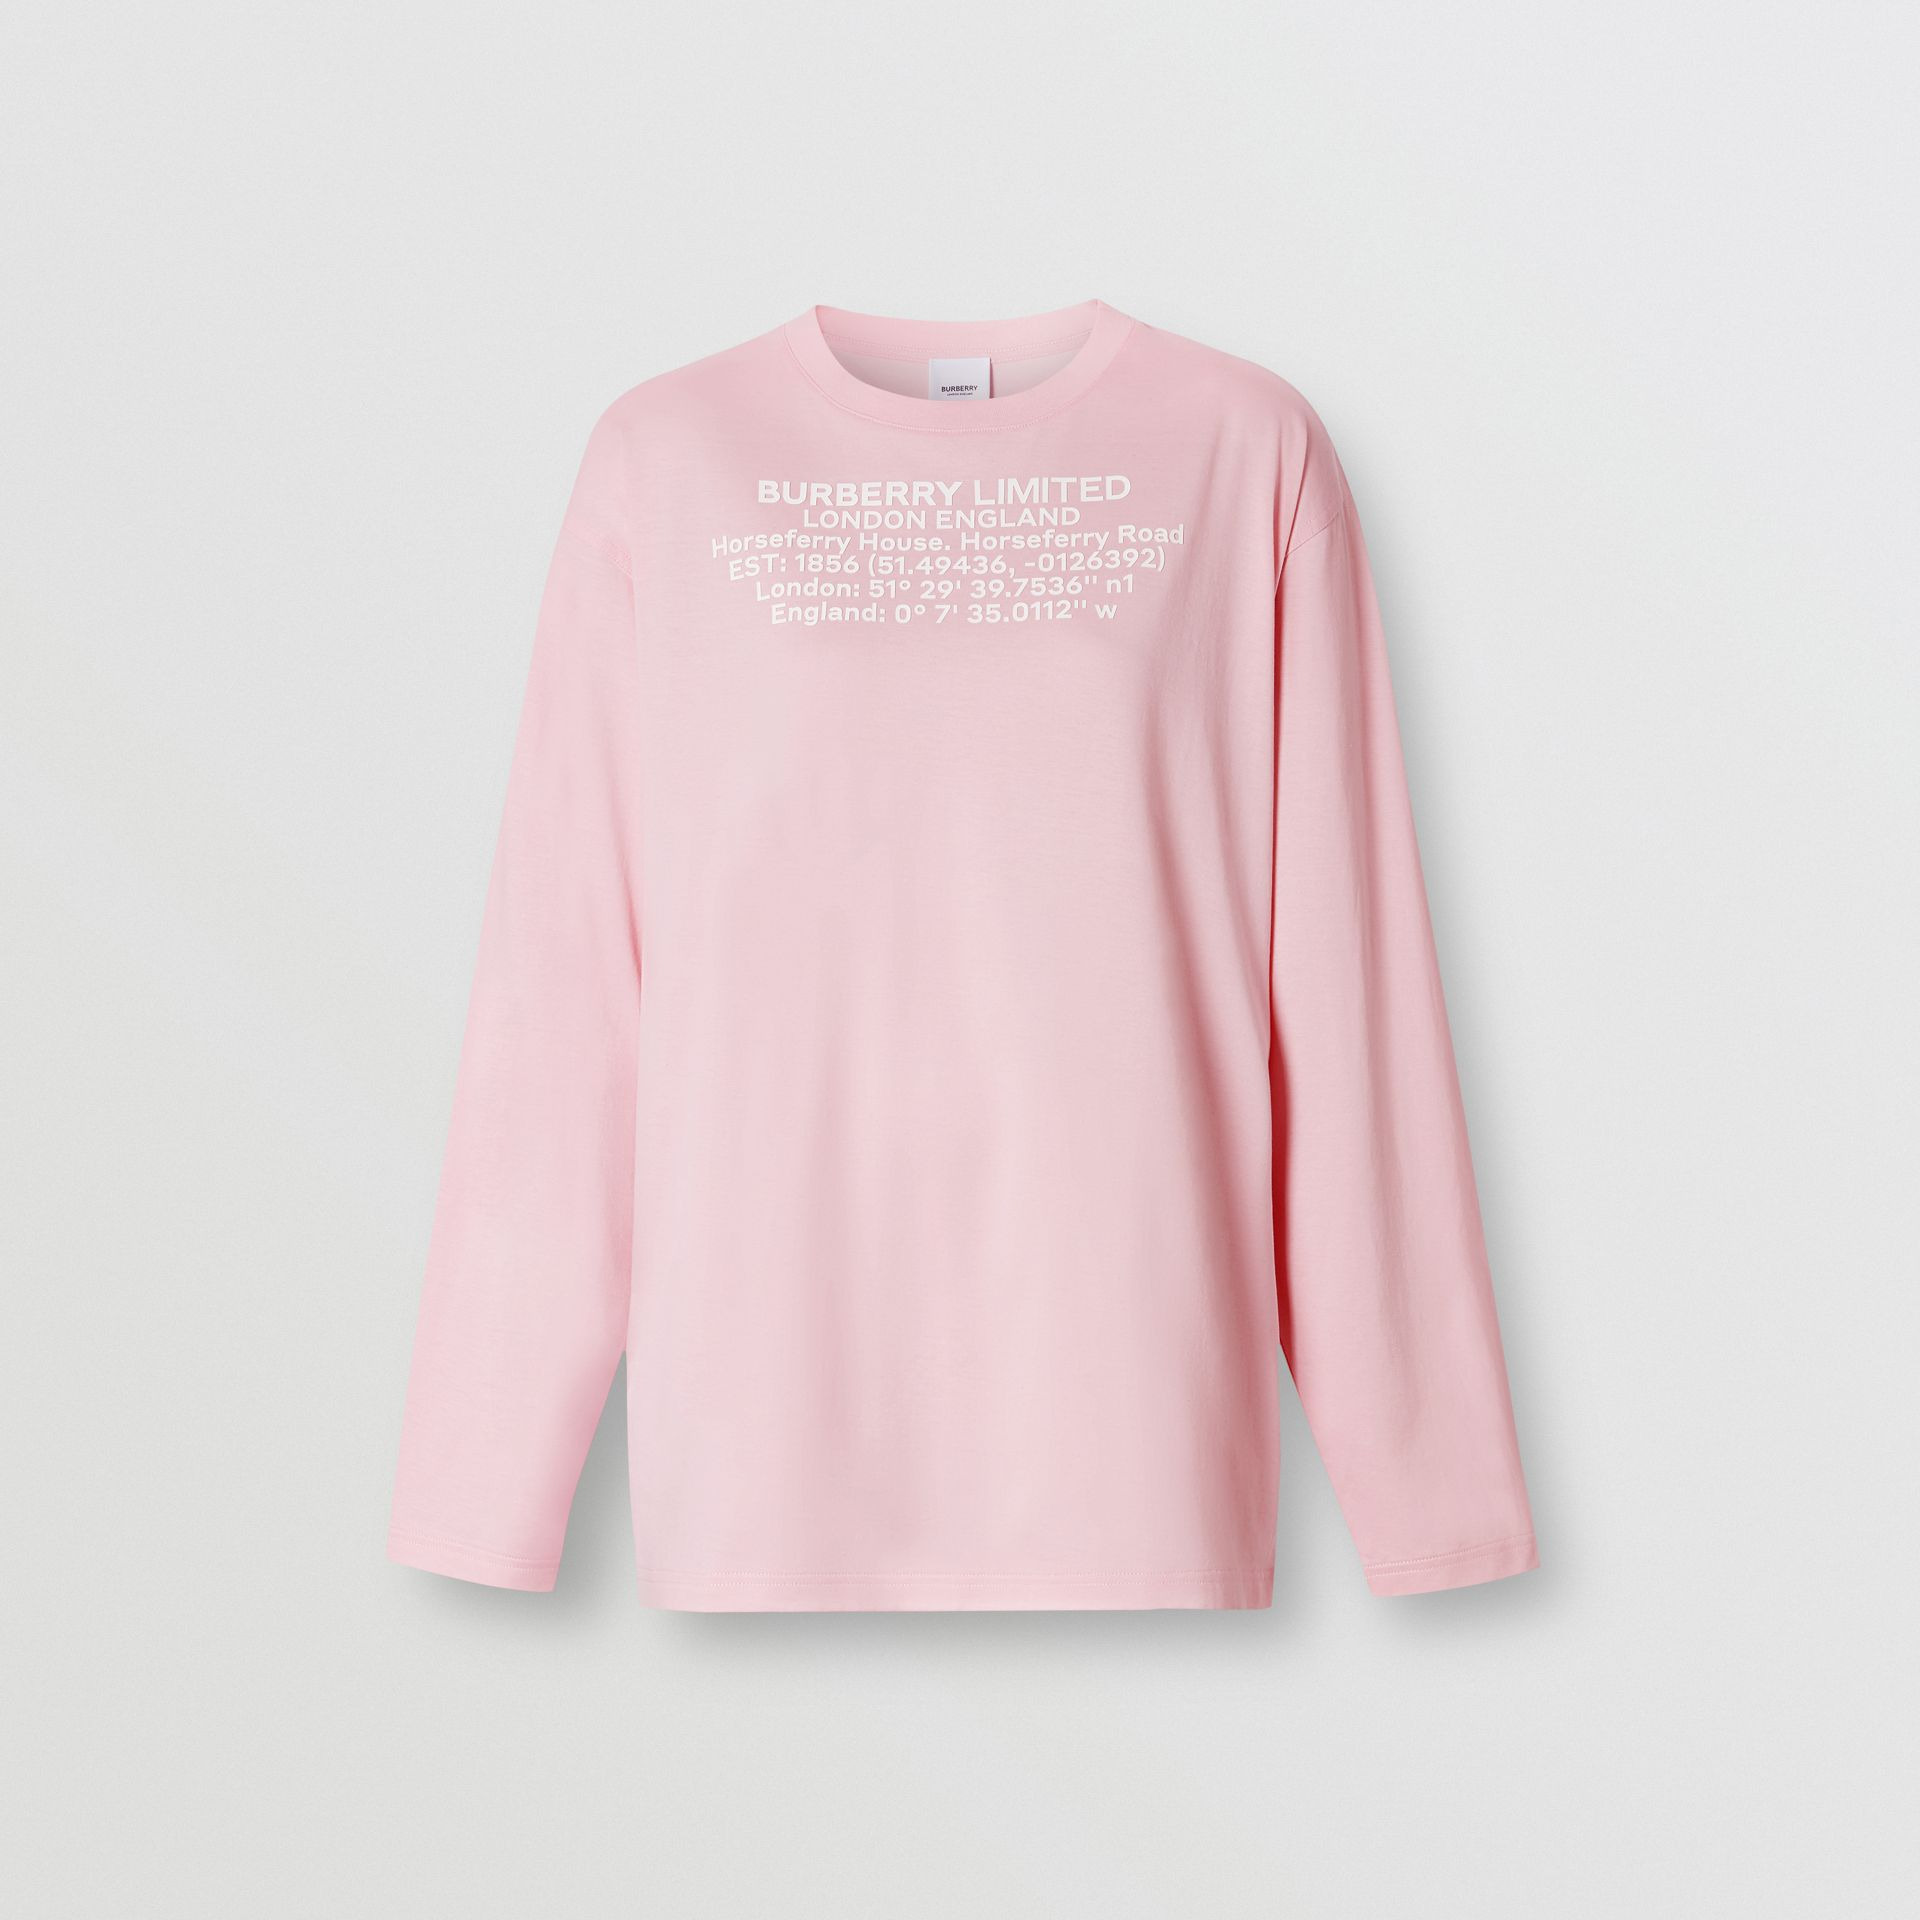 Long-sleeve Location Print Cotton Oversized Top in Candy Pink - Women | Burberry United Kingdom - gallery image 3